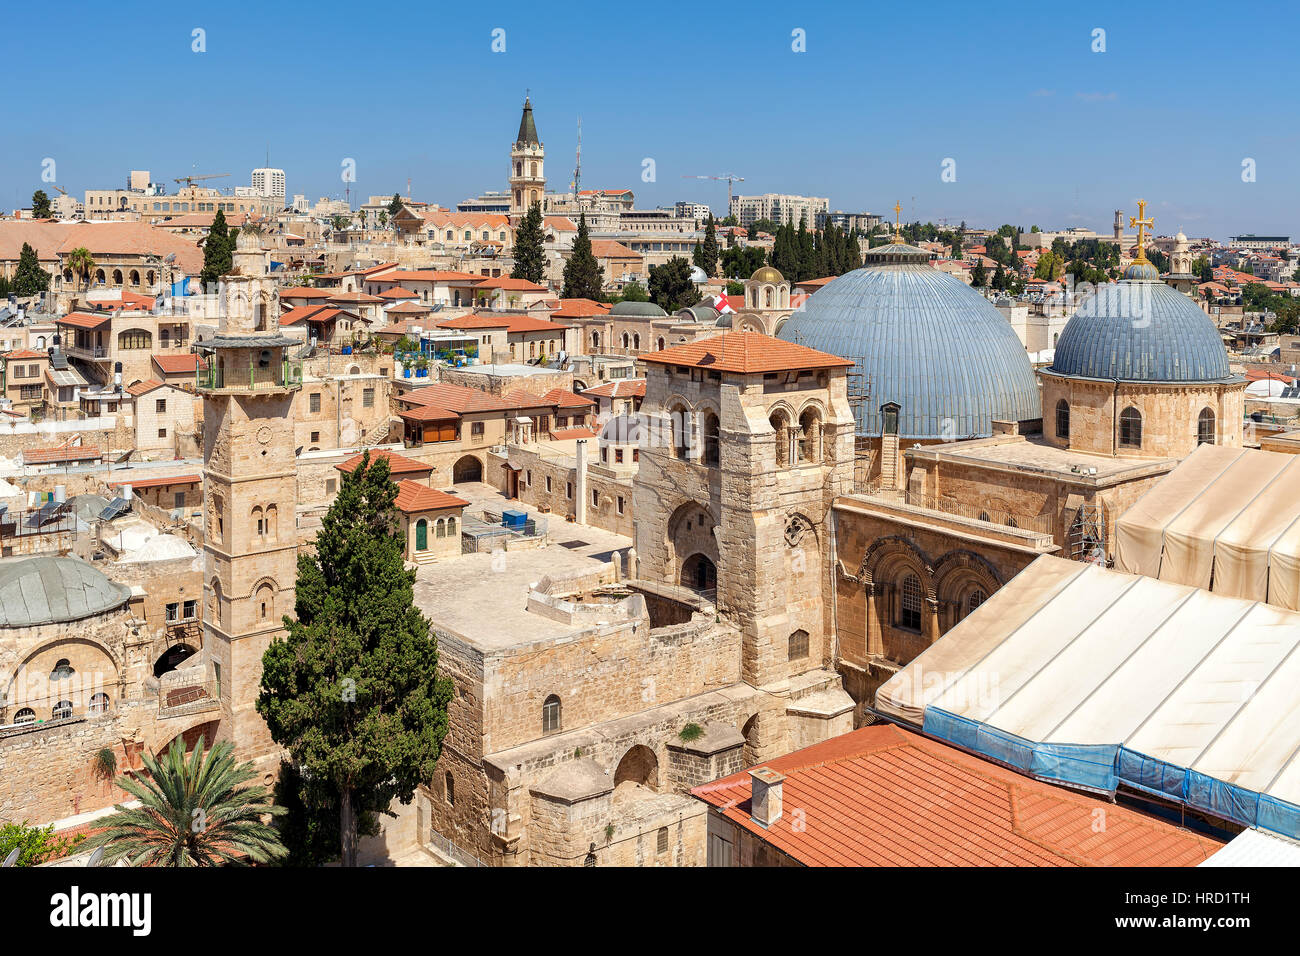 Church of the Holy Sepulchre domes, minarets and rooftops of the Old City of Jerusalem, Israel as seen from above. Stock Photo